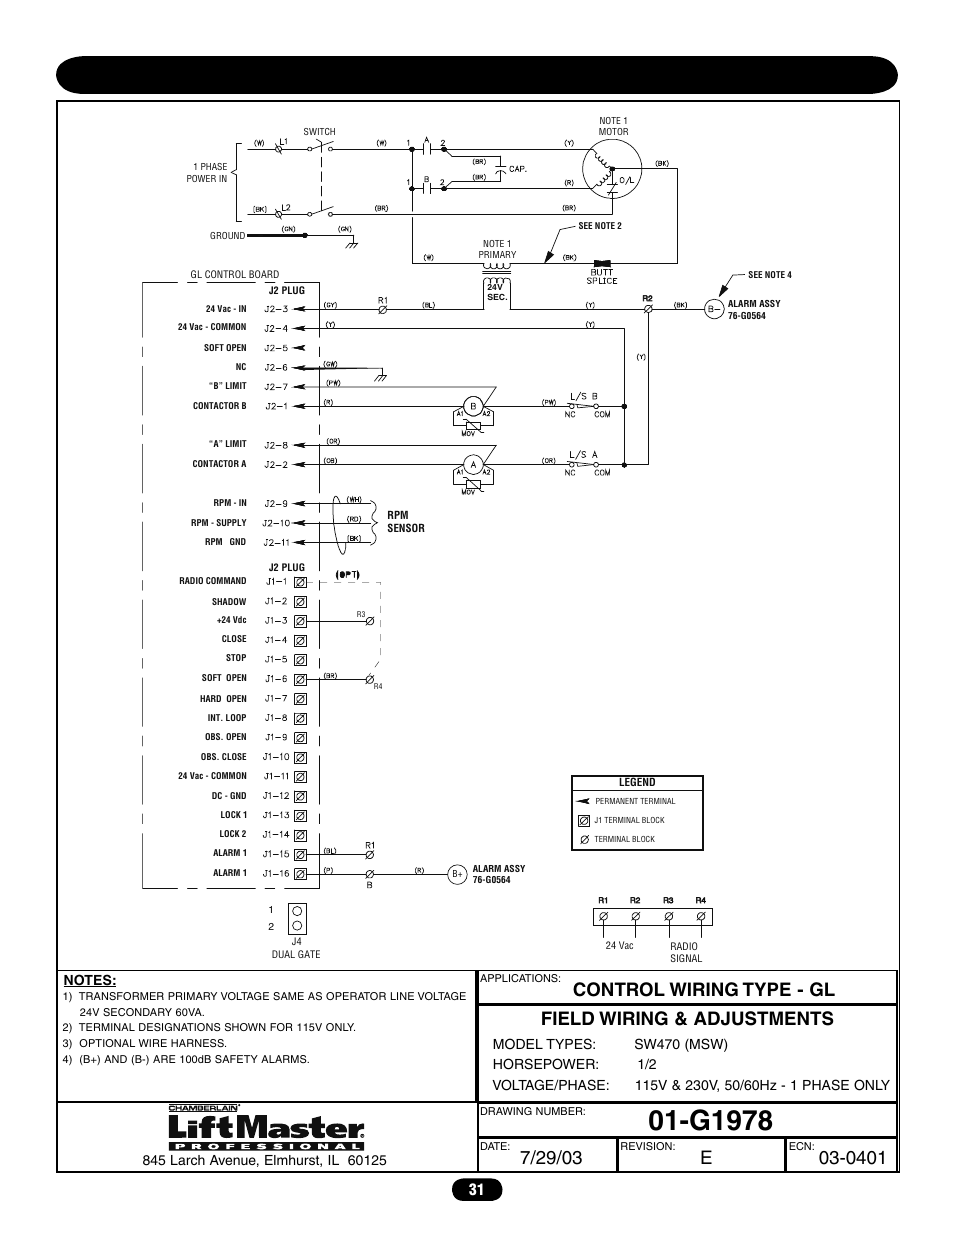 single phase wiring diagram (sw470), g1978 chamberlain liftmaster Lift Master Wiring-Diagram MA001